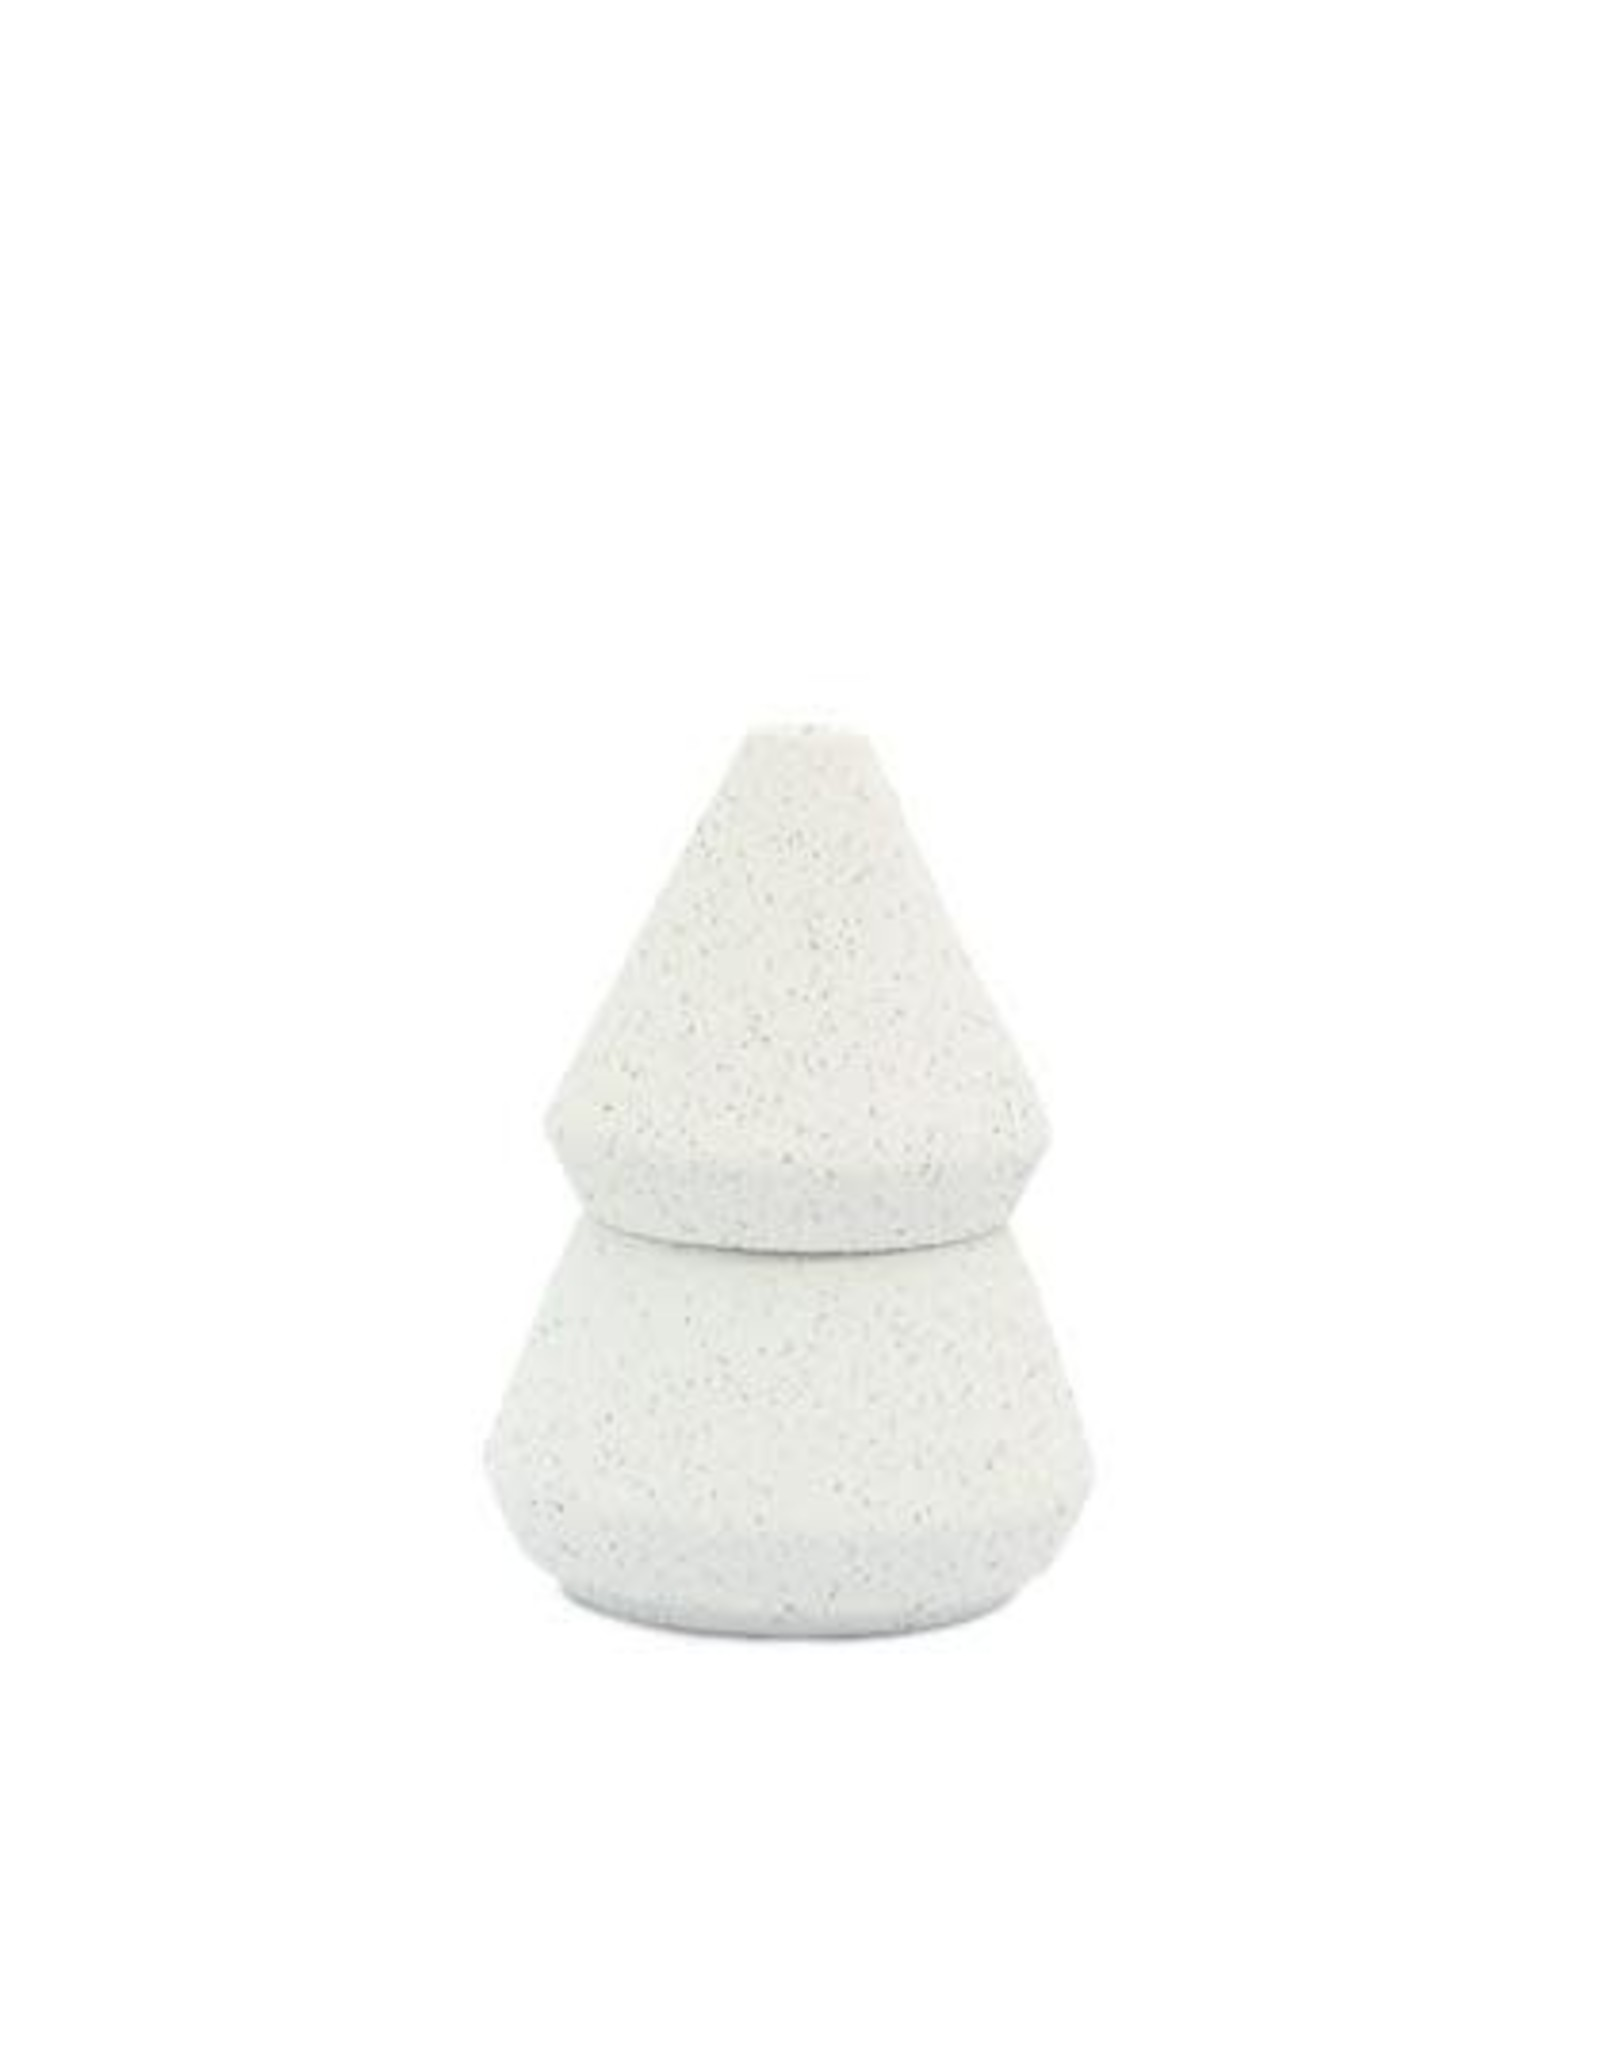 Cypress & Fir Candle 5.5oz-Small White Speckled Textured Ceramic Tree Stack